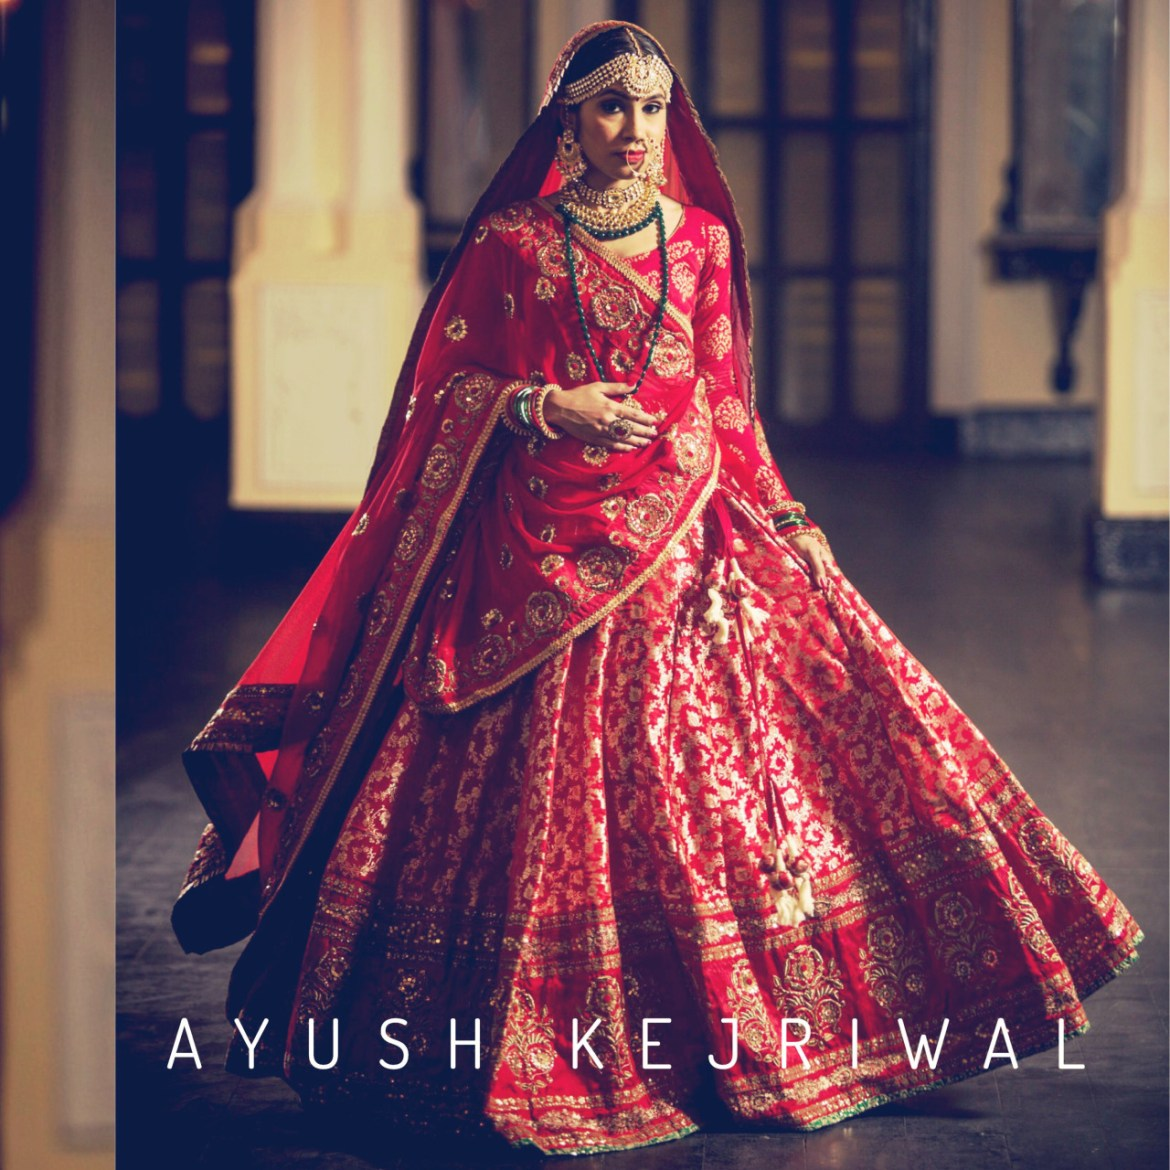 Indian Wedding Gown Designers: Designer Alert: All The Details About Ayush Kejriwal